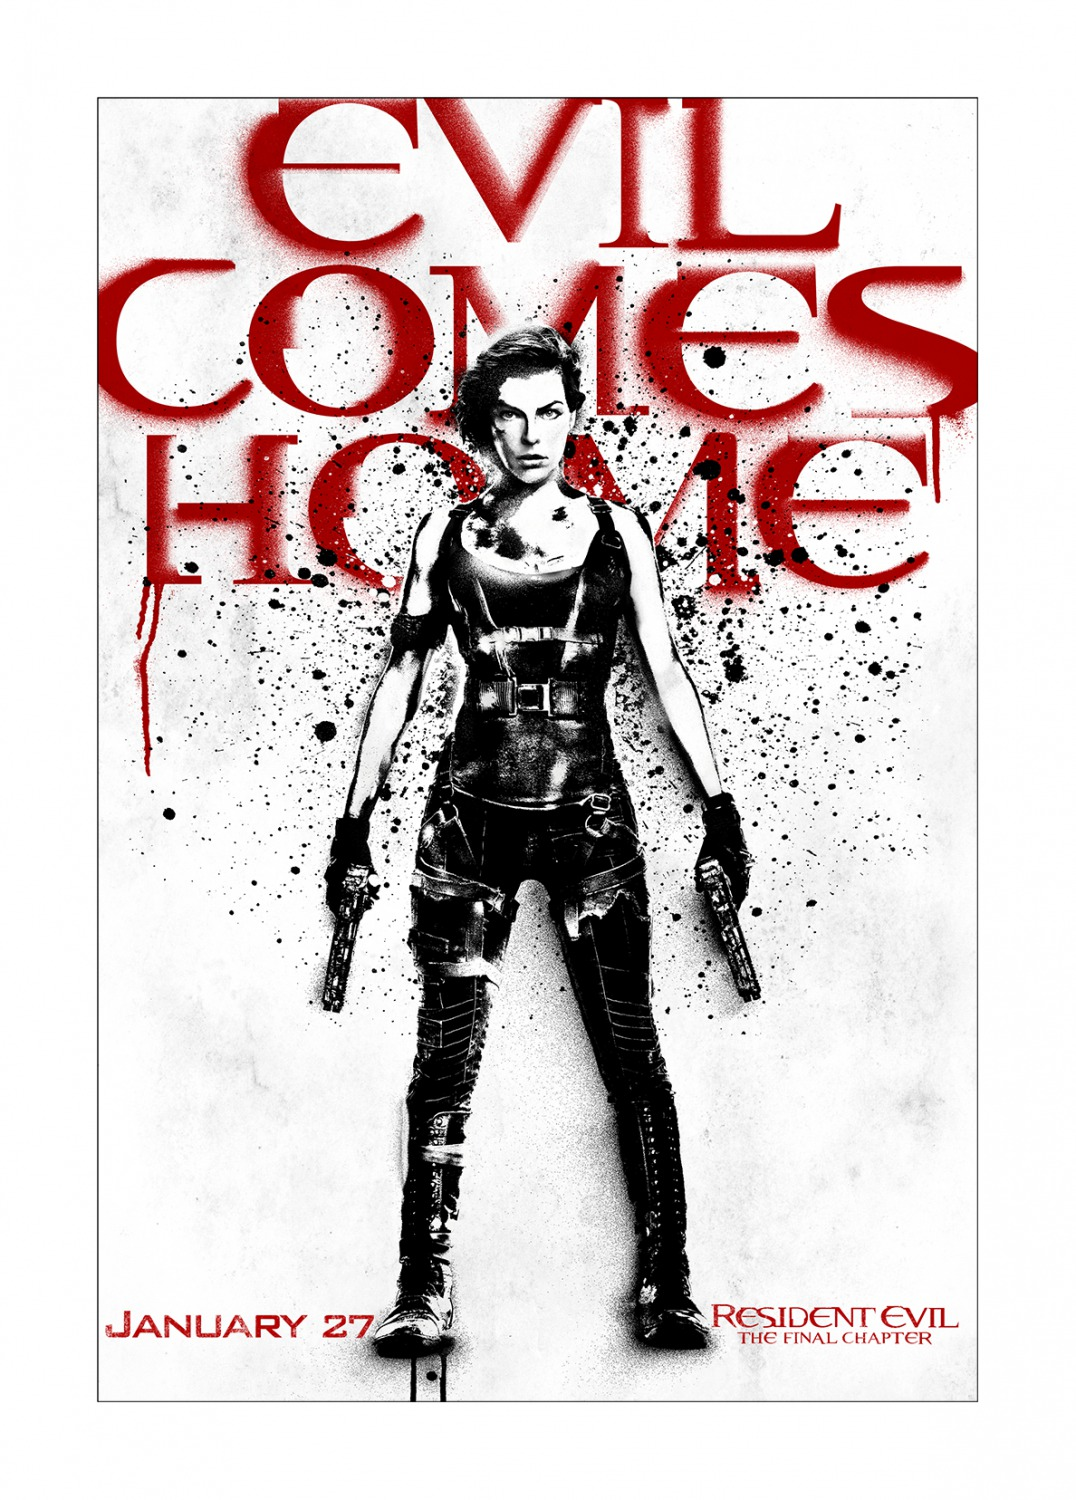 Resident Evil The Final Chapter New Art Posters Bring Evil Home